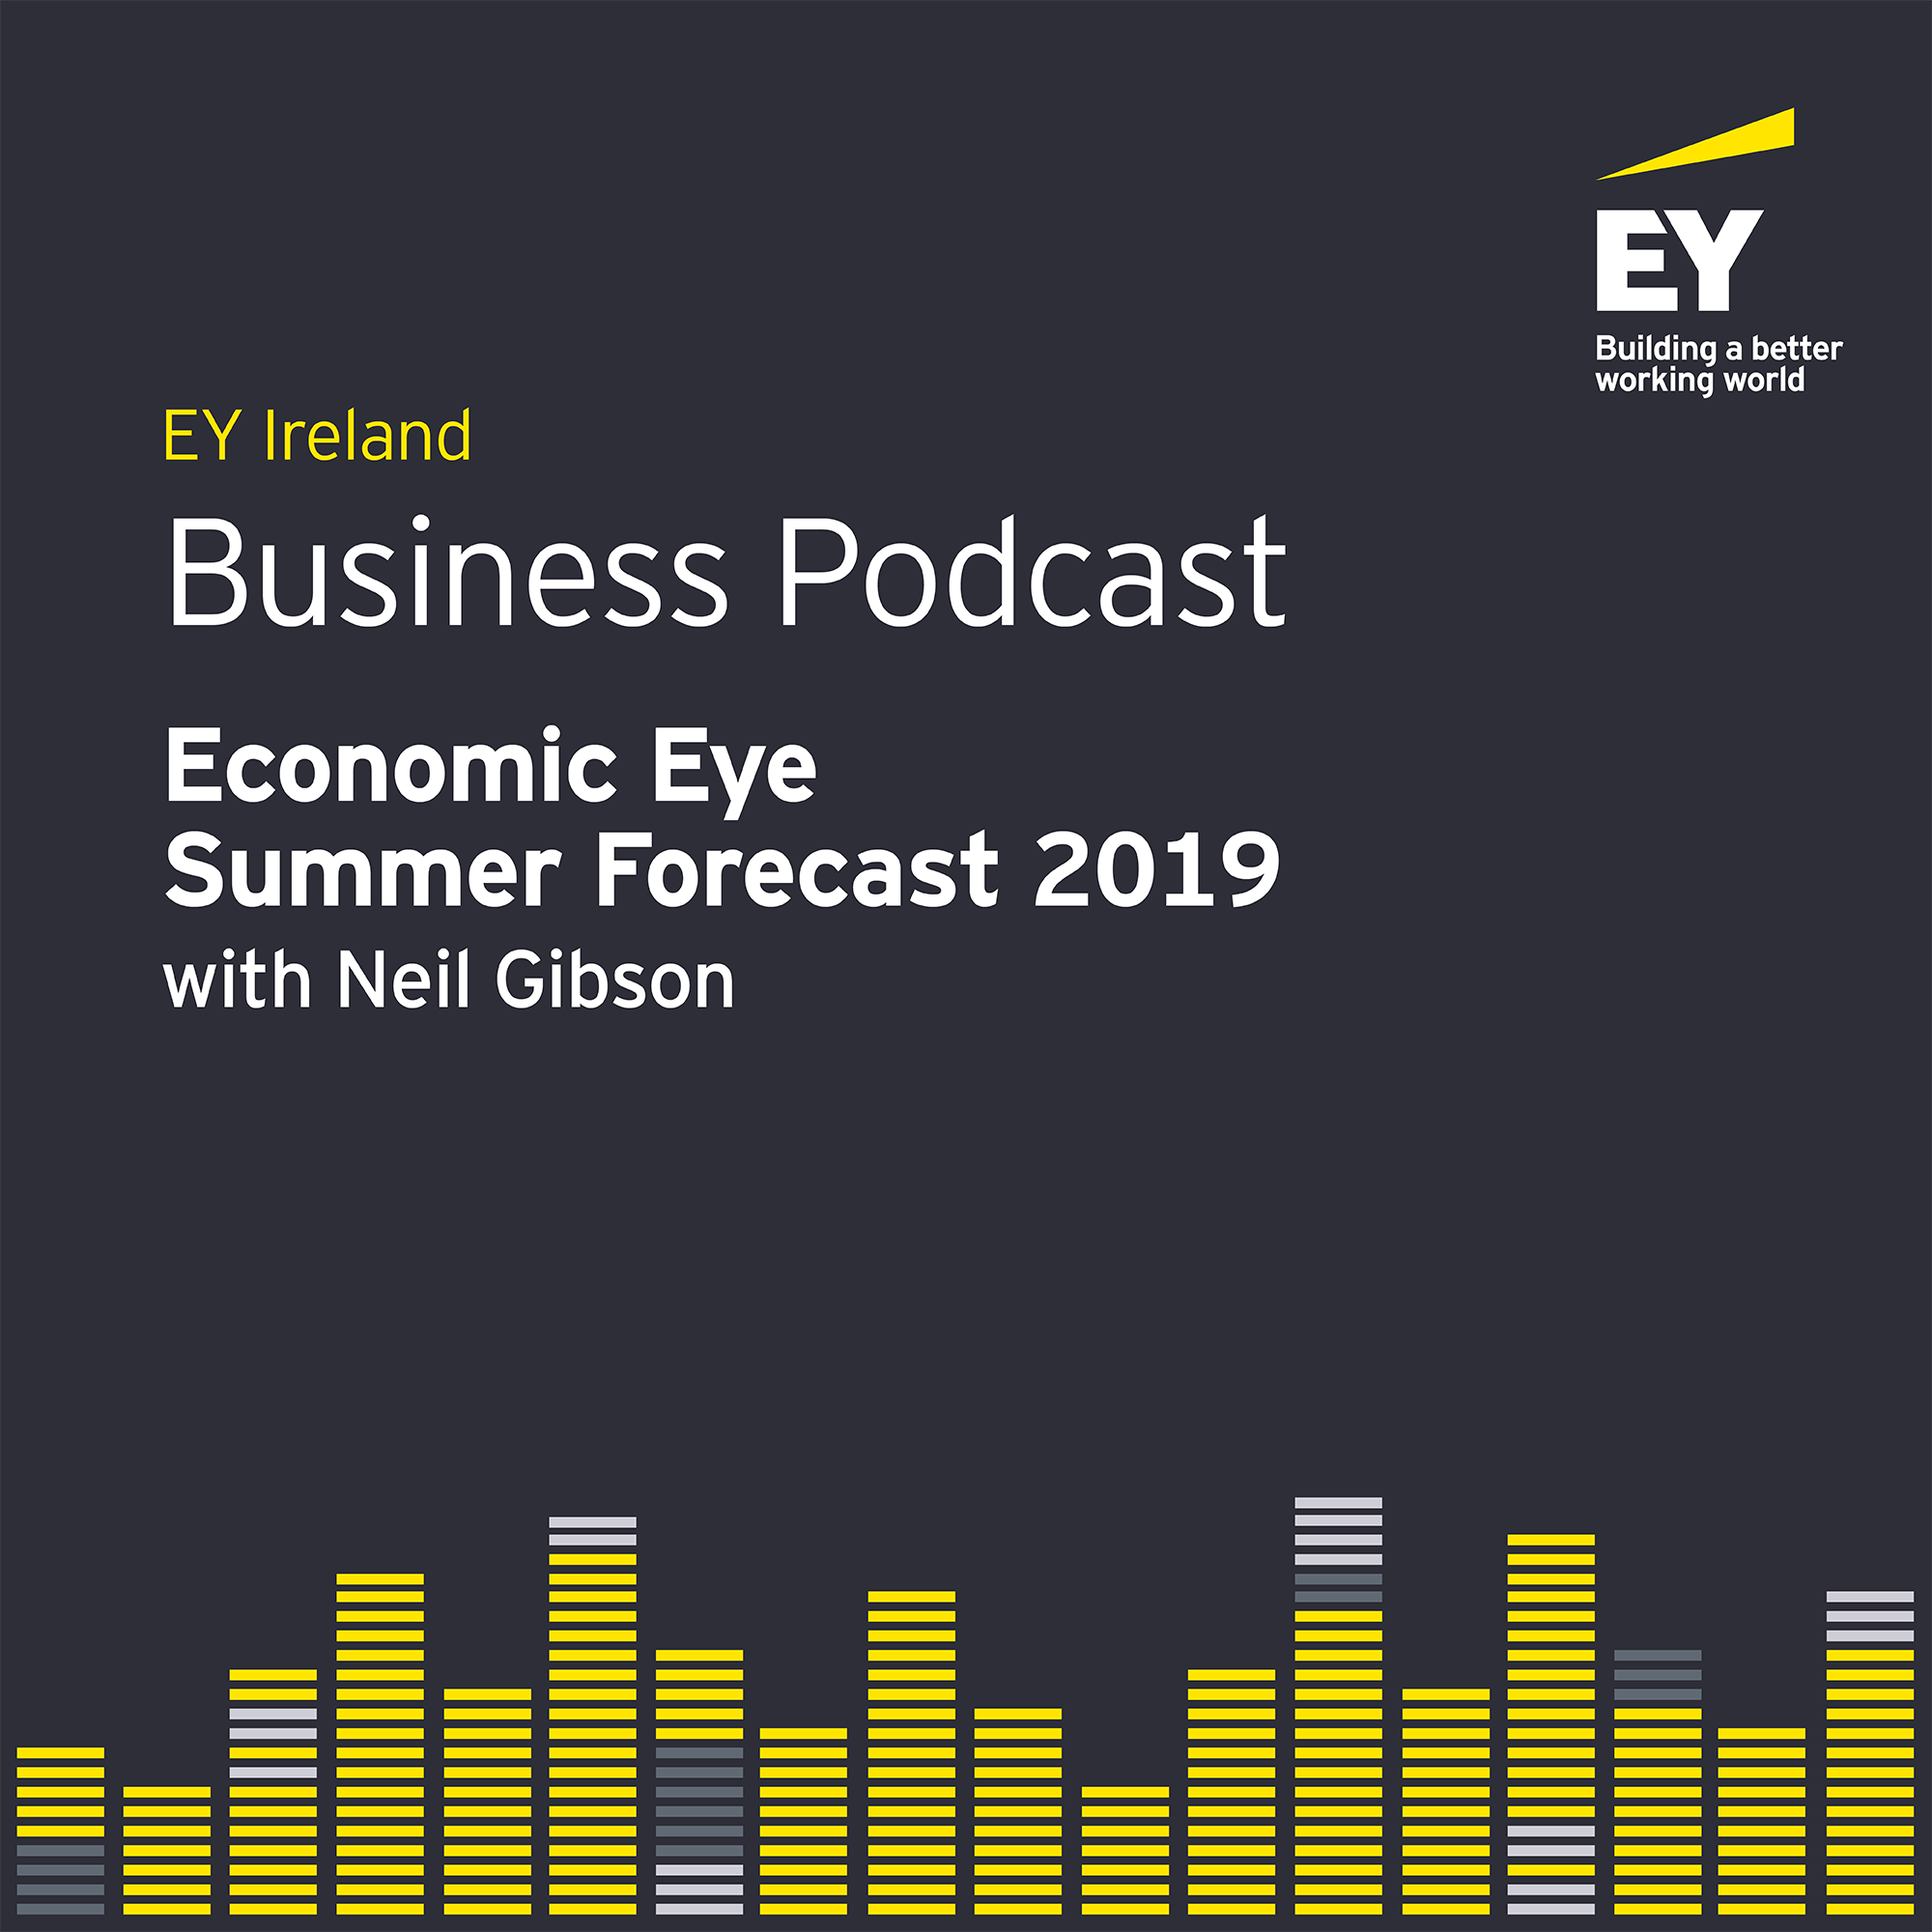 Economic Eye Summer Forecast 2019 with Neil Gibson